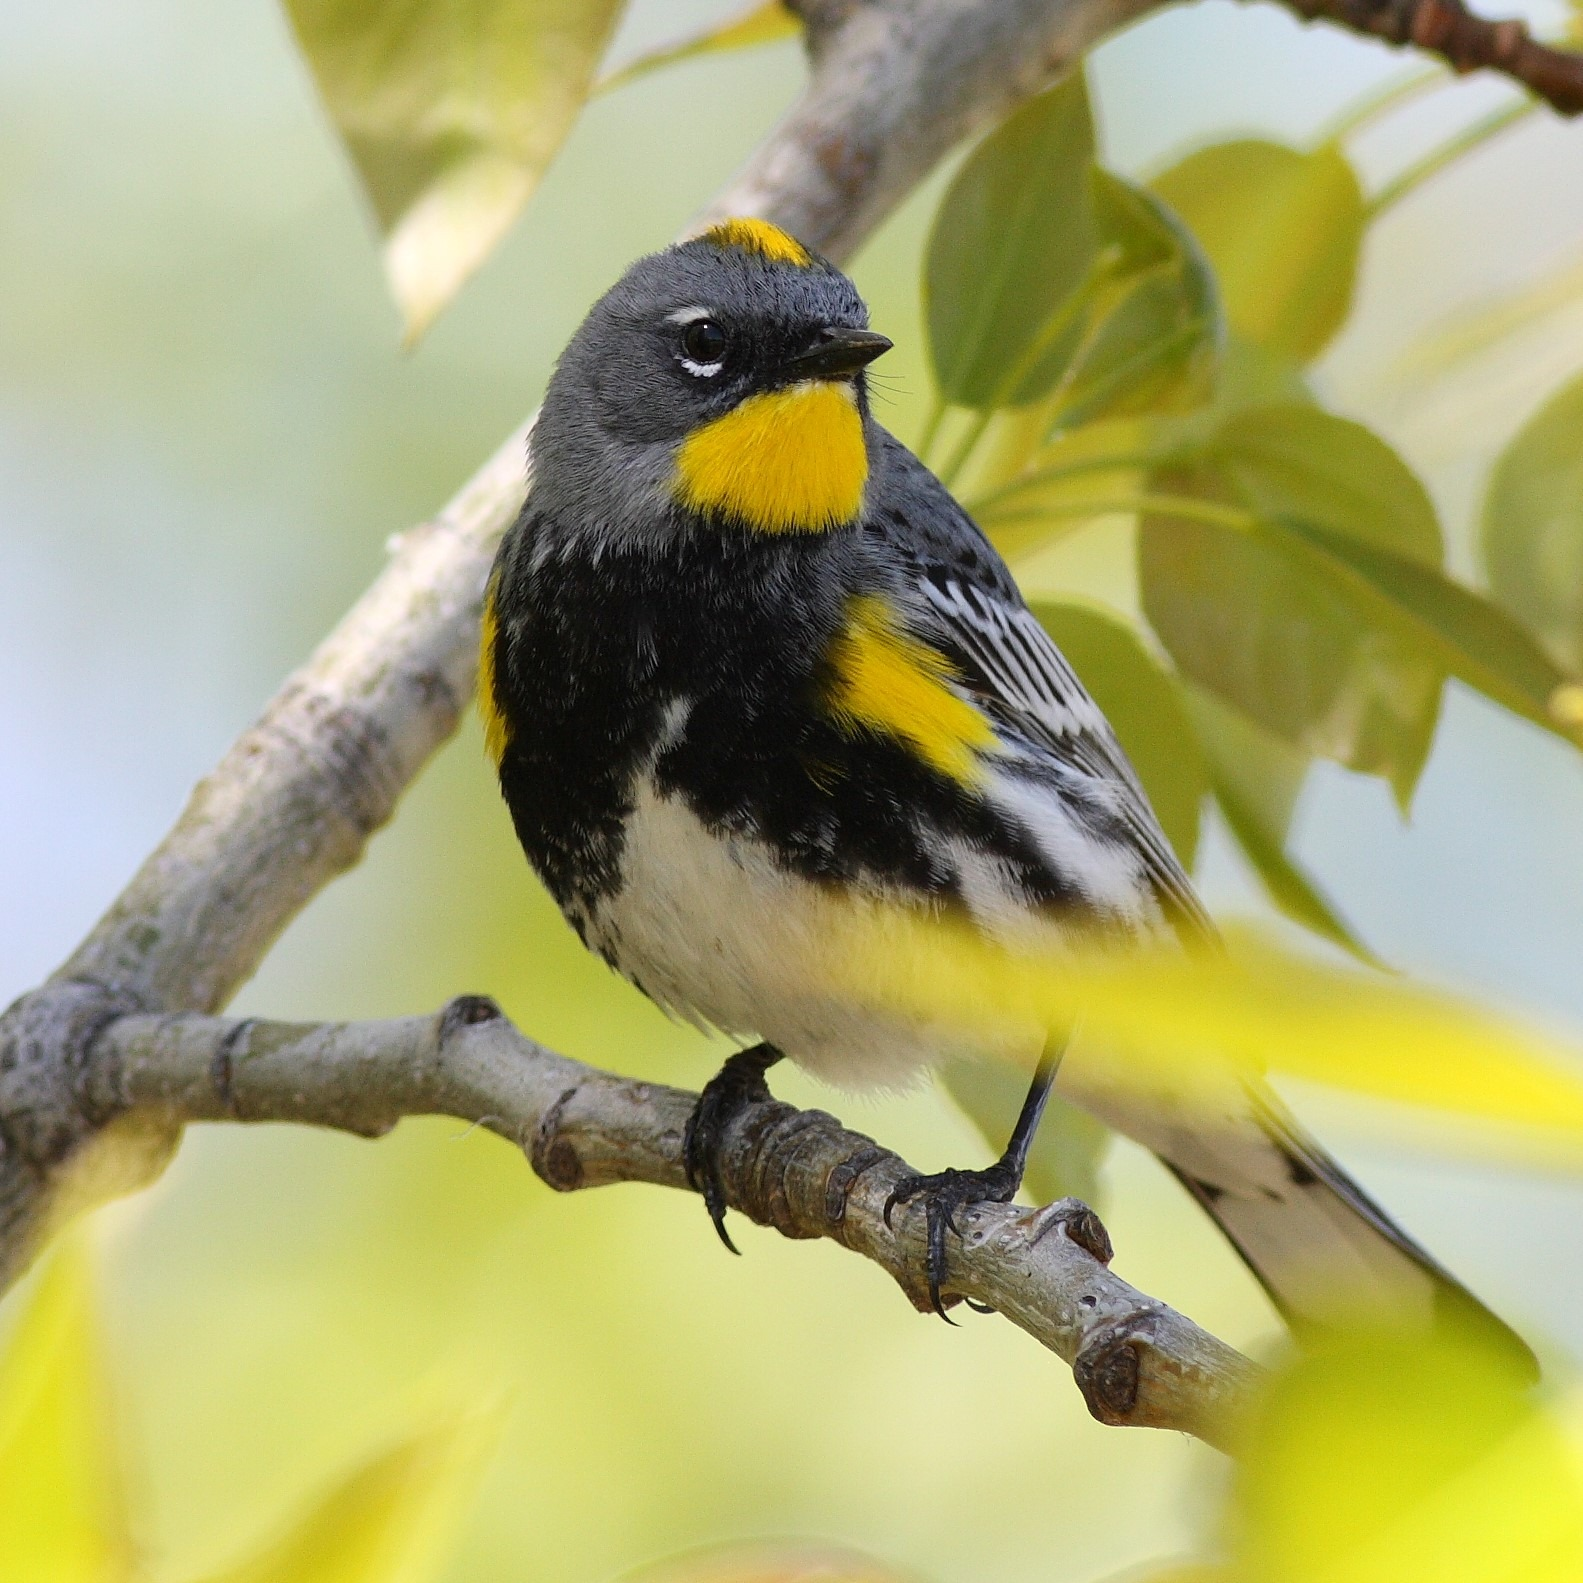 Yellow-rumped Warbler perched on branch. Link to BIRD IDENTIFICATION TOOL